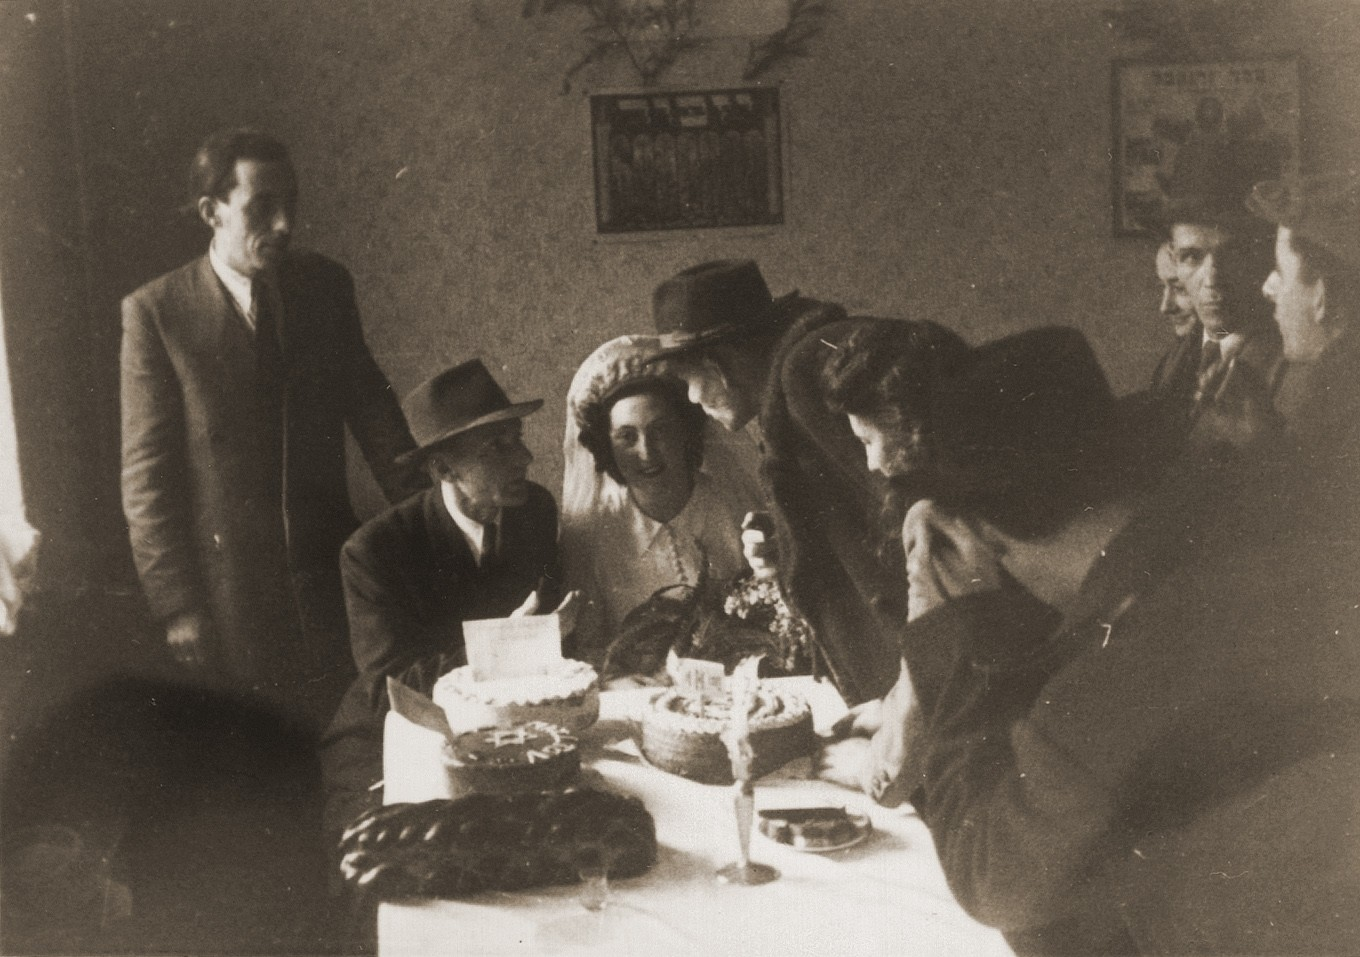 The wedding of Ibby Neuman and Max Mandel at the Bad Reichenhall displaced persons' camp.